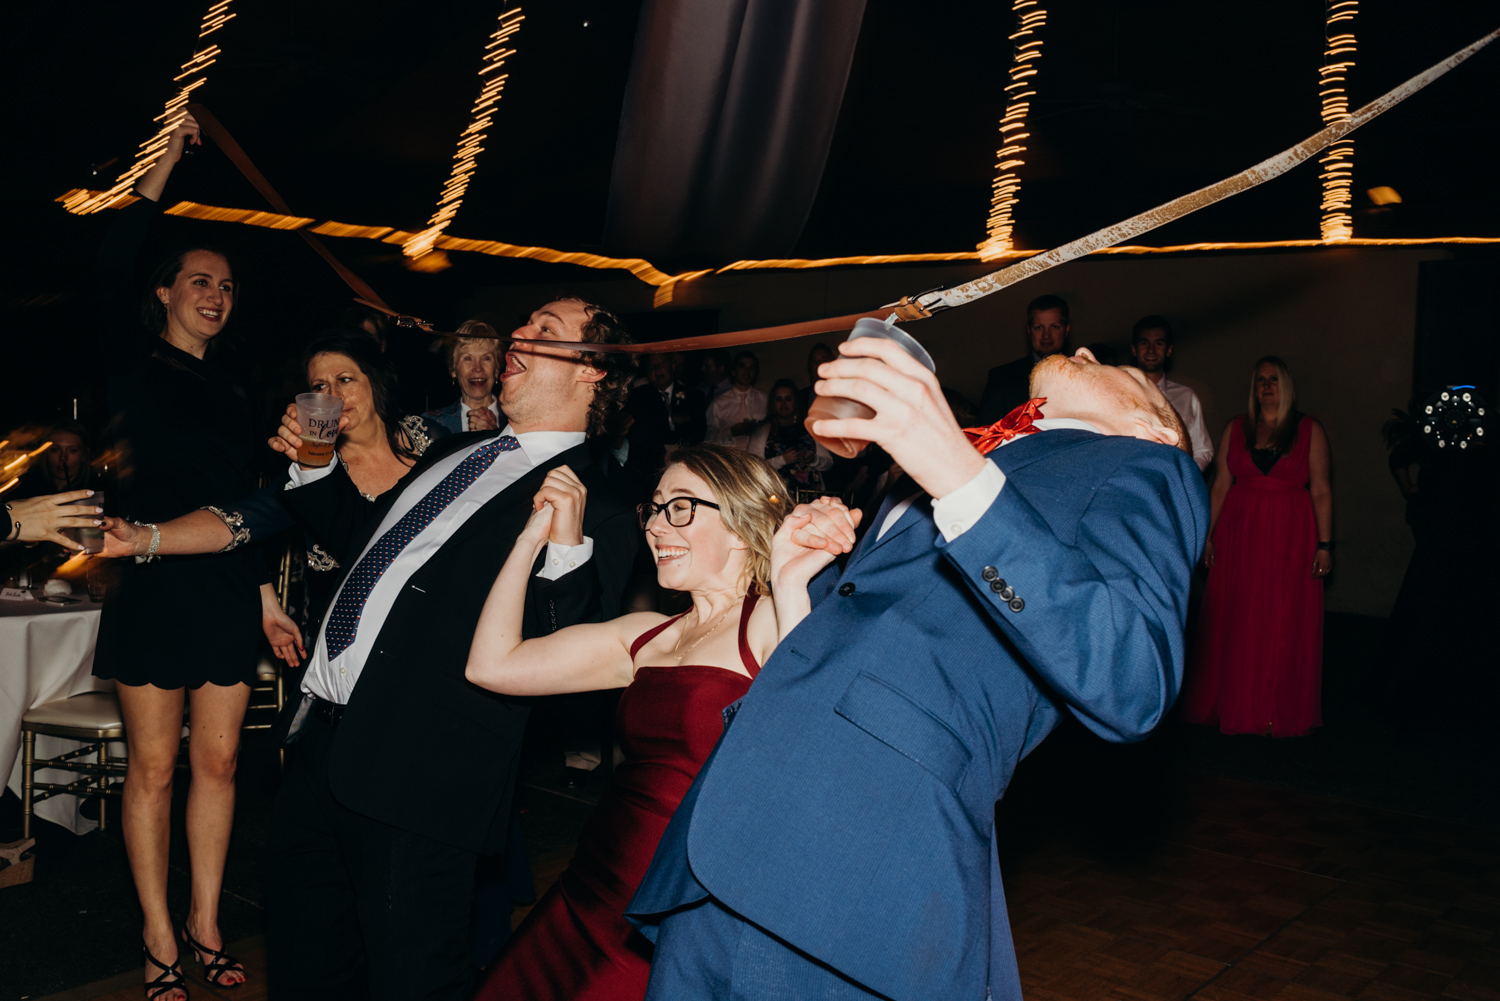 Guests do the limbo during the reception at McCormick Ranch Golf Club in Scottsdale, Arizona.